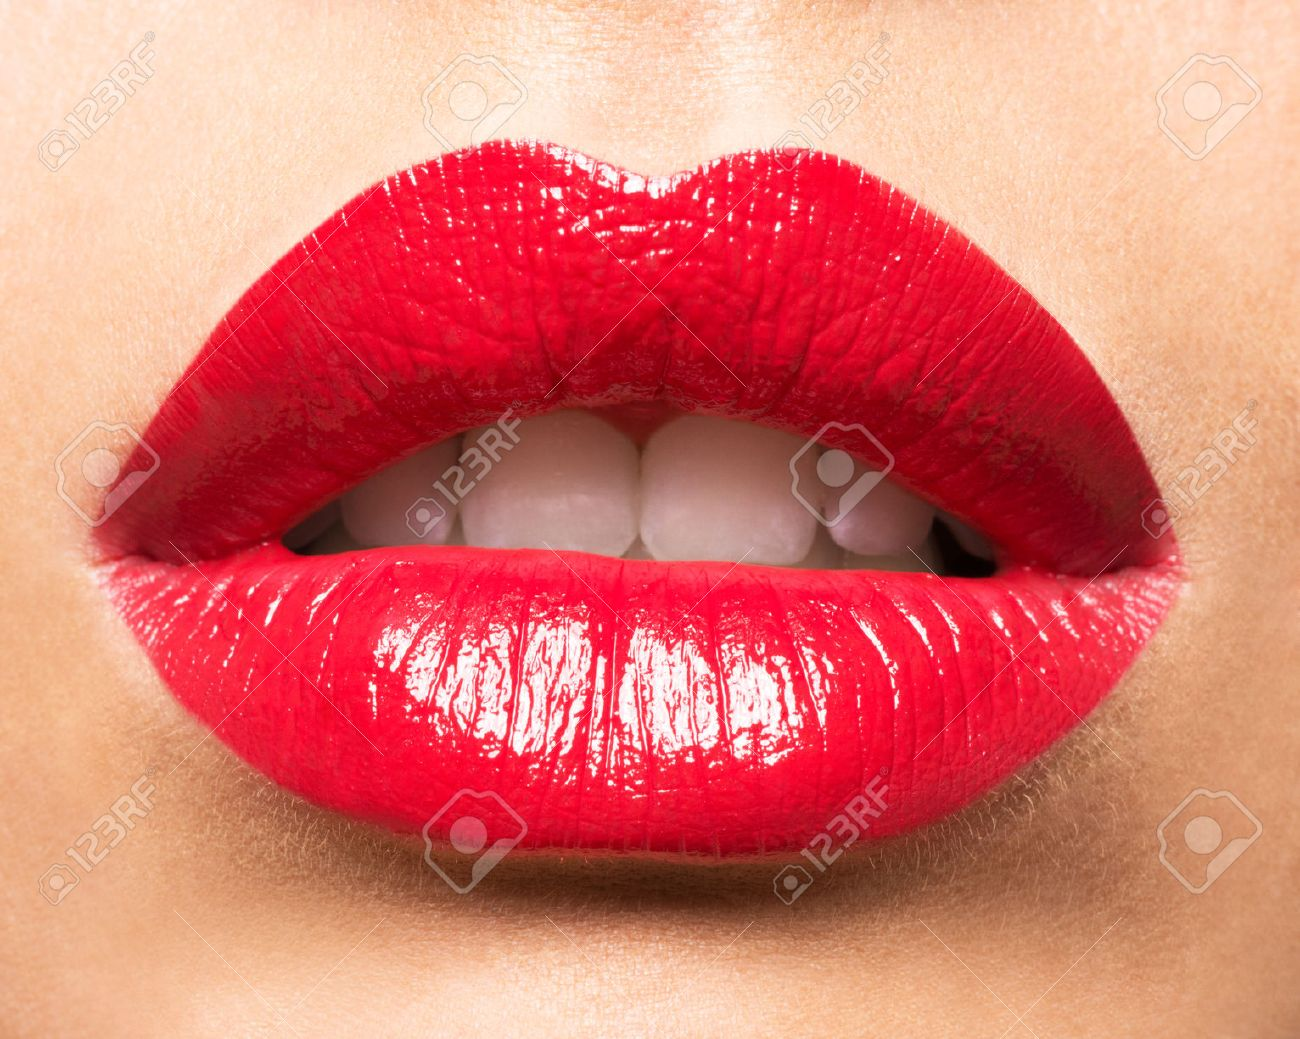 Woman's lips with red lipstick. Glamour fashion bright gloss make-up. Banque d'images - 44898896